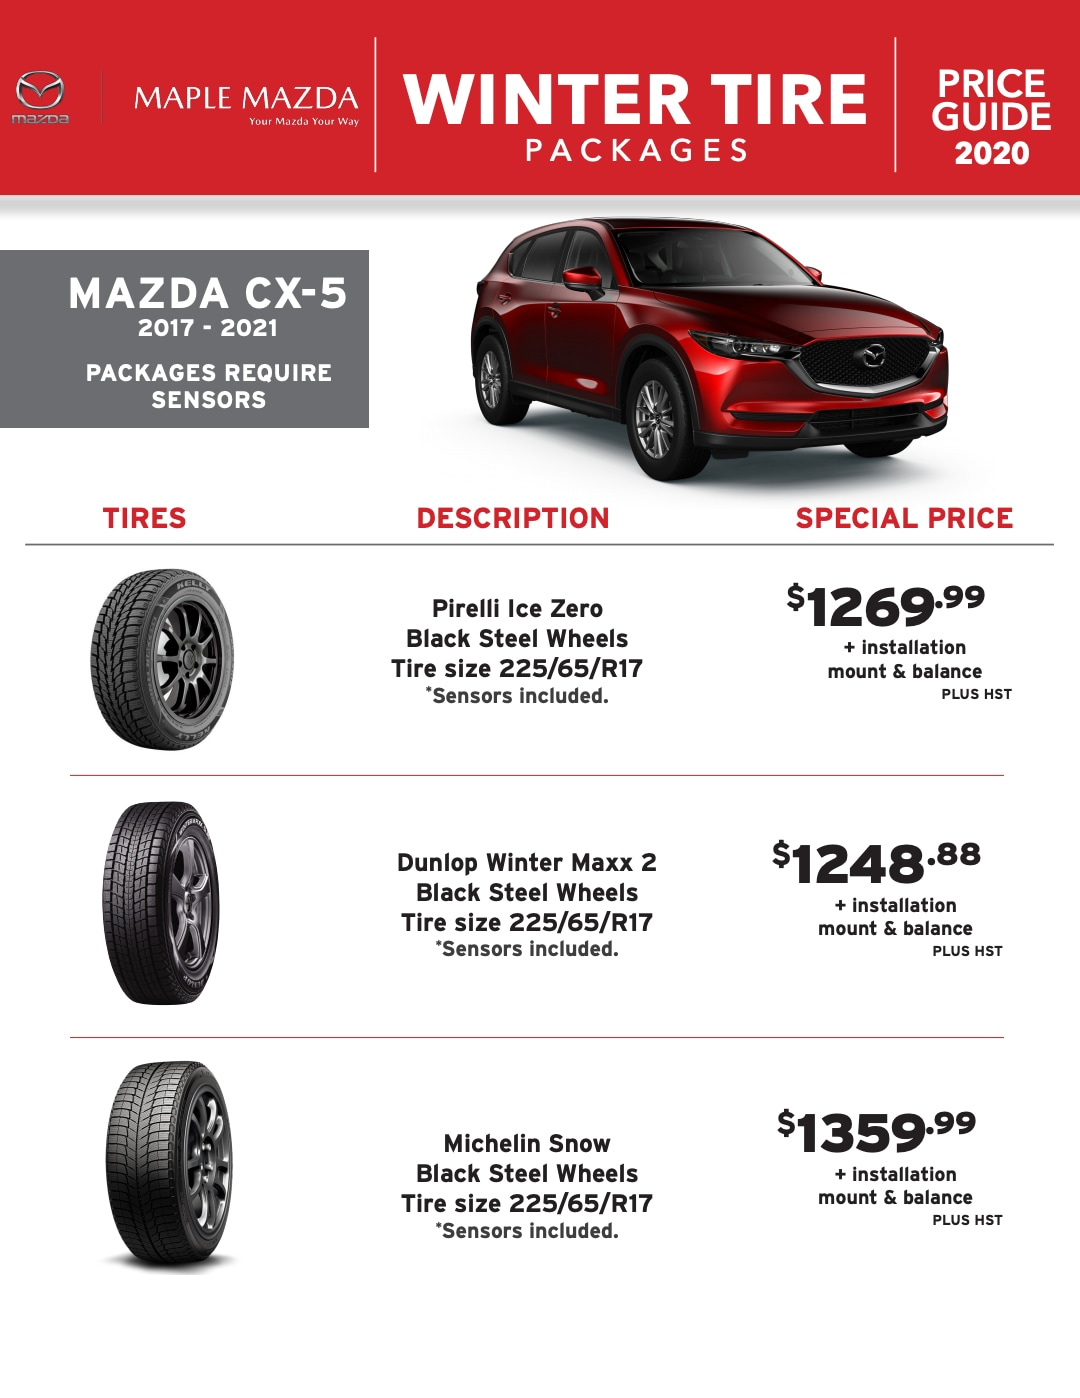 Winter Tire Packages in Maple, Ontario - MAZDA CX-30